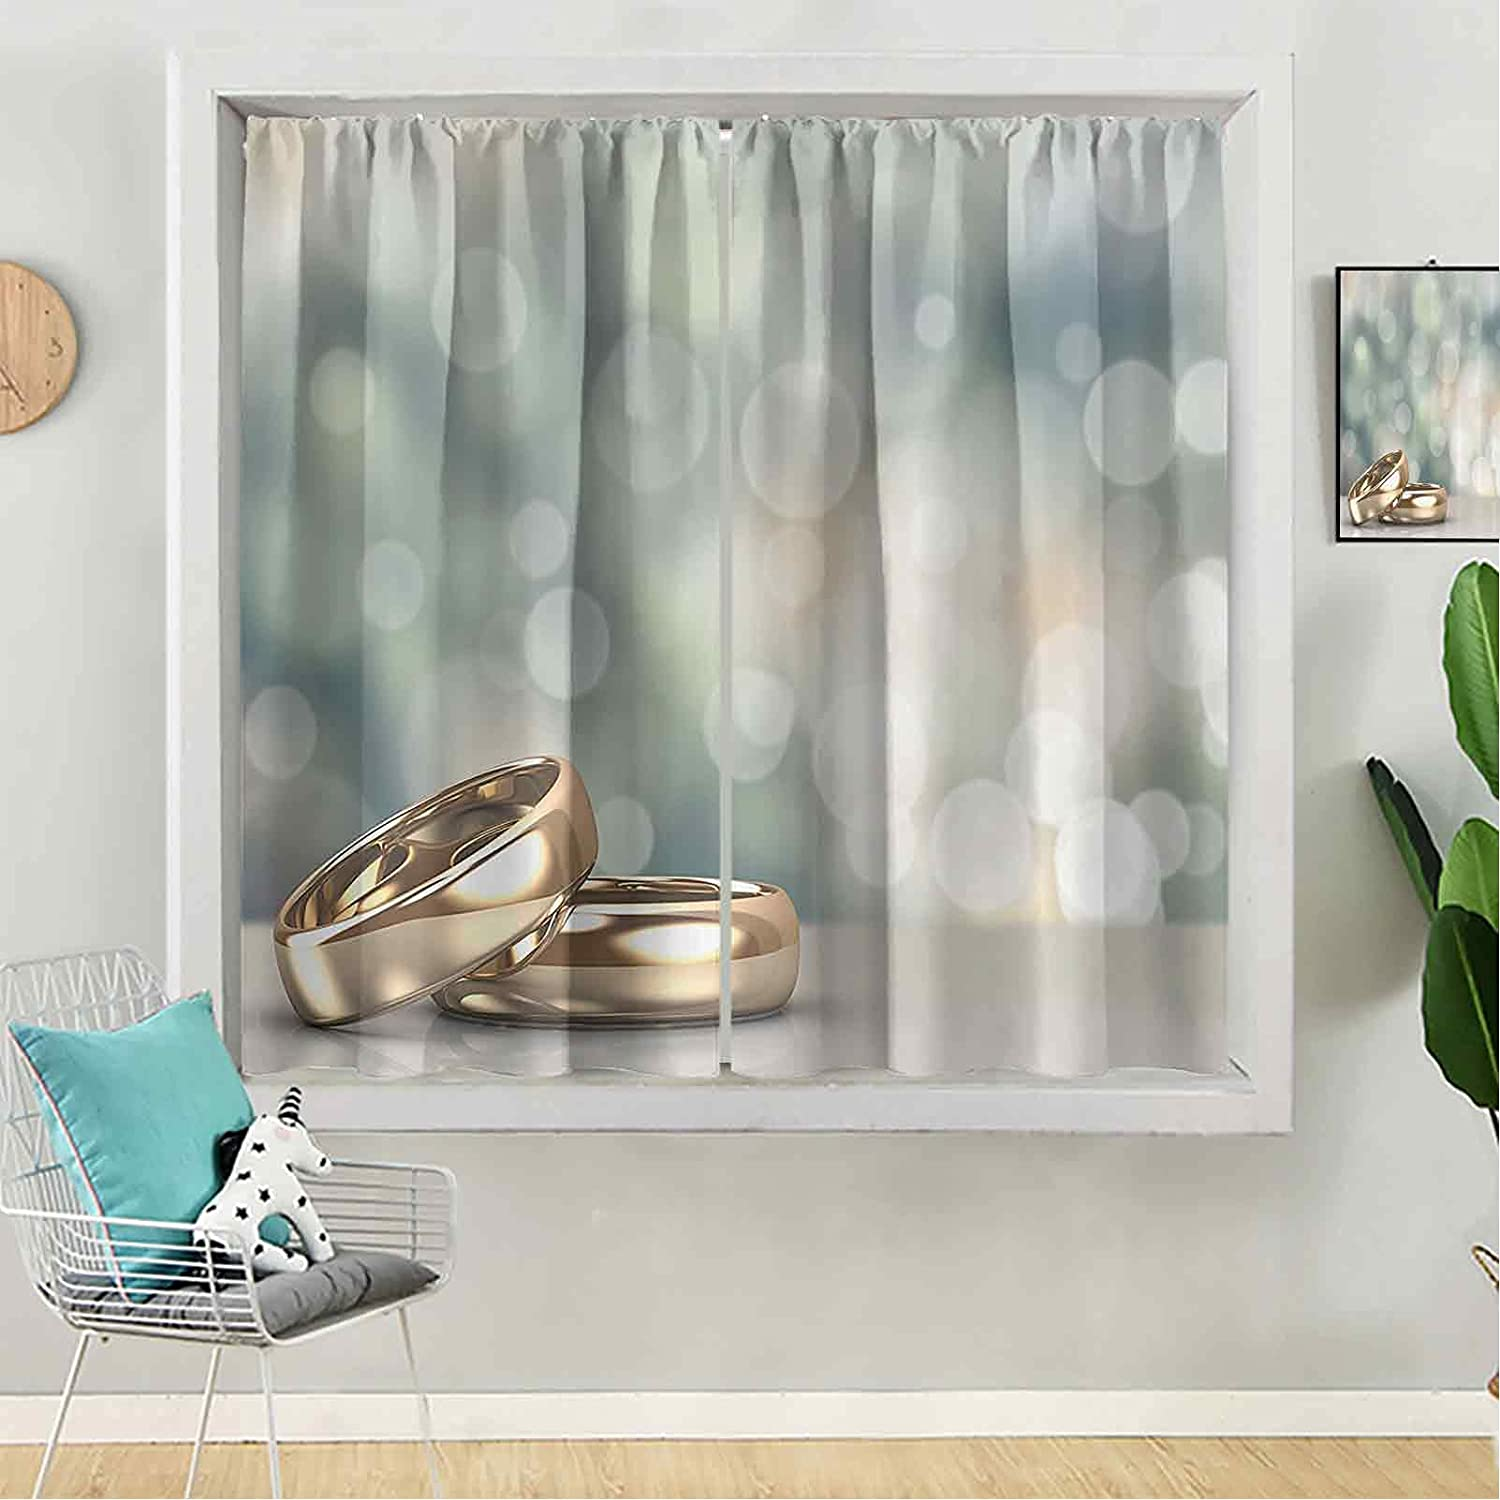 Blackout Curtain famous 72 Excellent inches Long for Panel Window Kids B